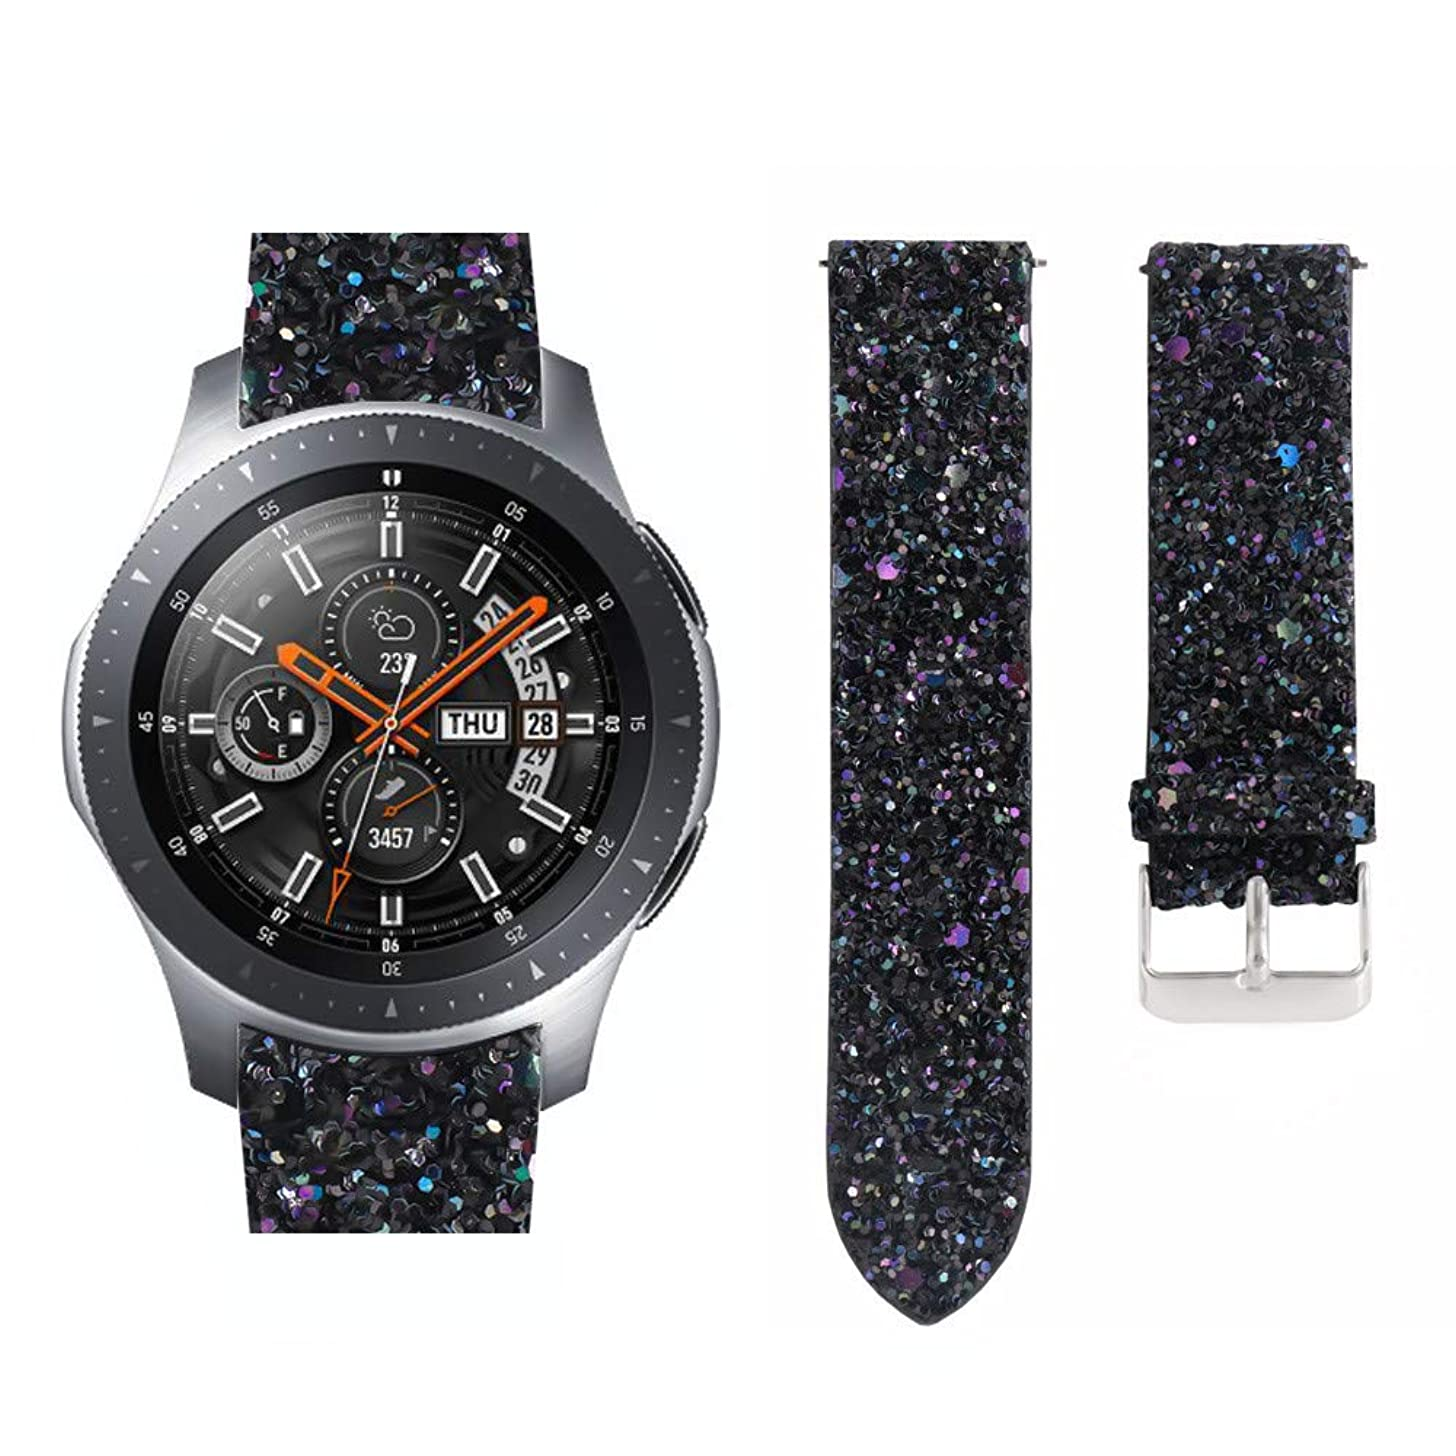 Ikevan 1 x Watch Band Bling Shiny Luxury Leather Replacement Watch Band Bracelet Strap for Samsung Galaxy Watch (42mm Black)